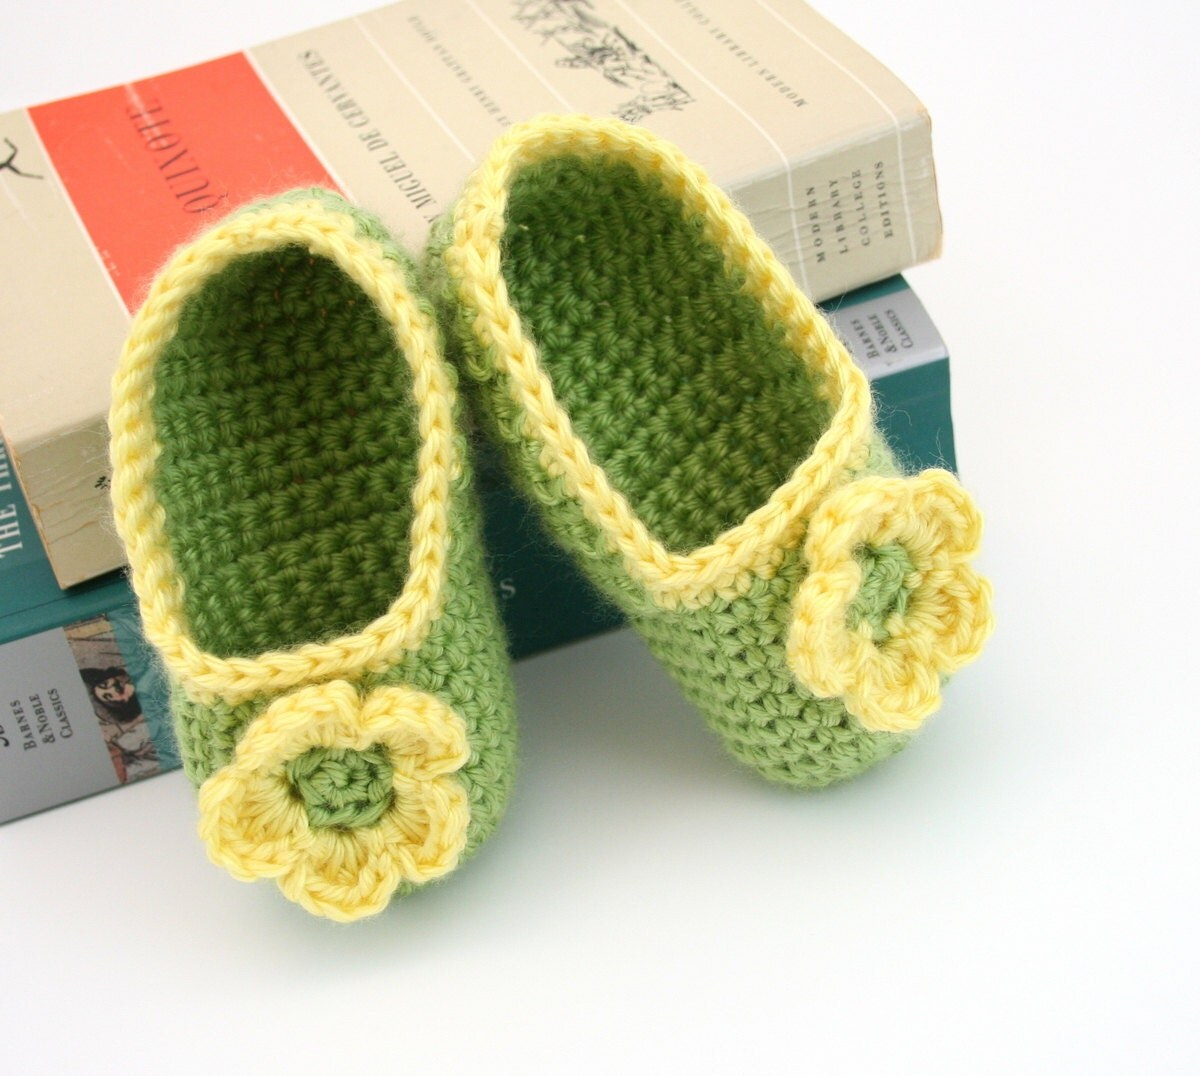 Felt Baby Shoes | Step-by-Step | DIY Craft How To's and